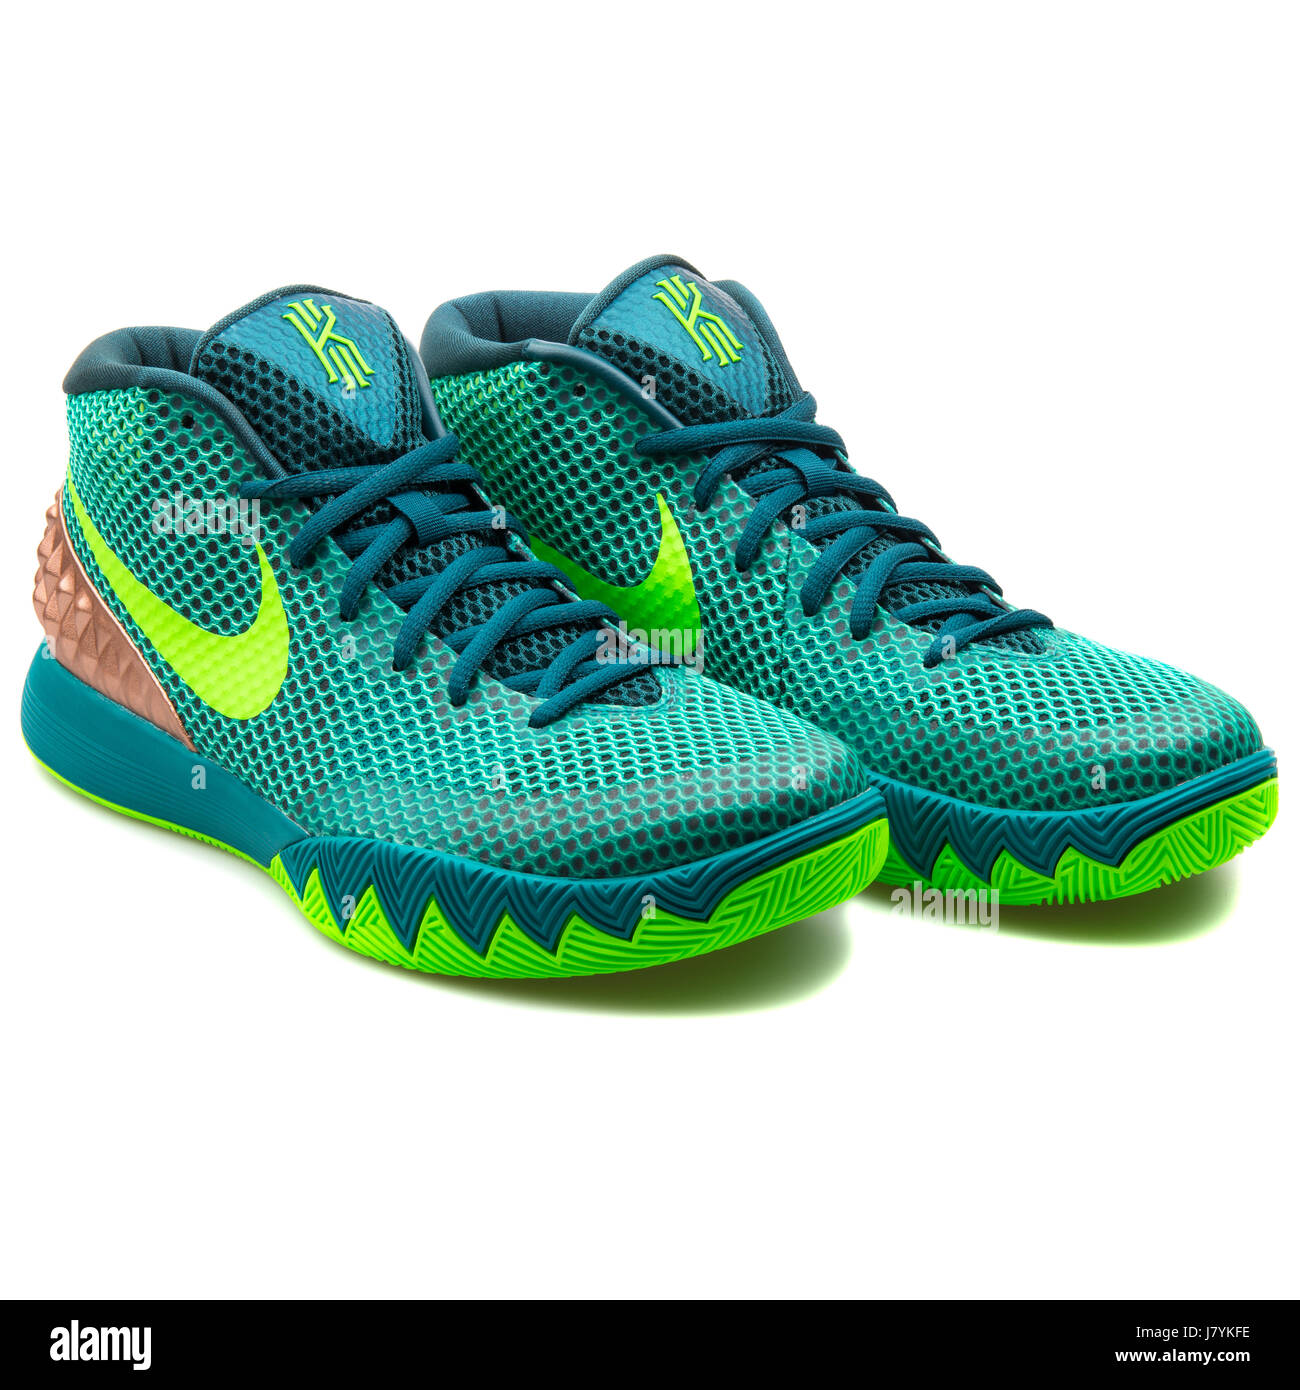 the best attitude c29d2 04cfe ... norway nike kyrie 1 mens green basketball sneakers 705277 333 stock  image 63cf3 460b2